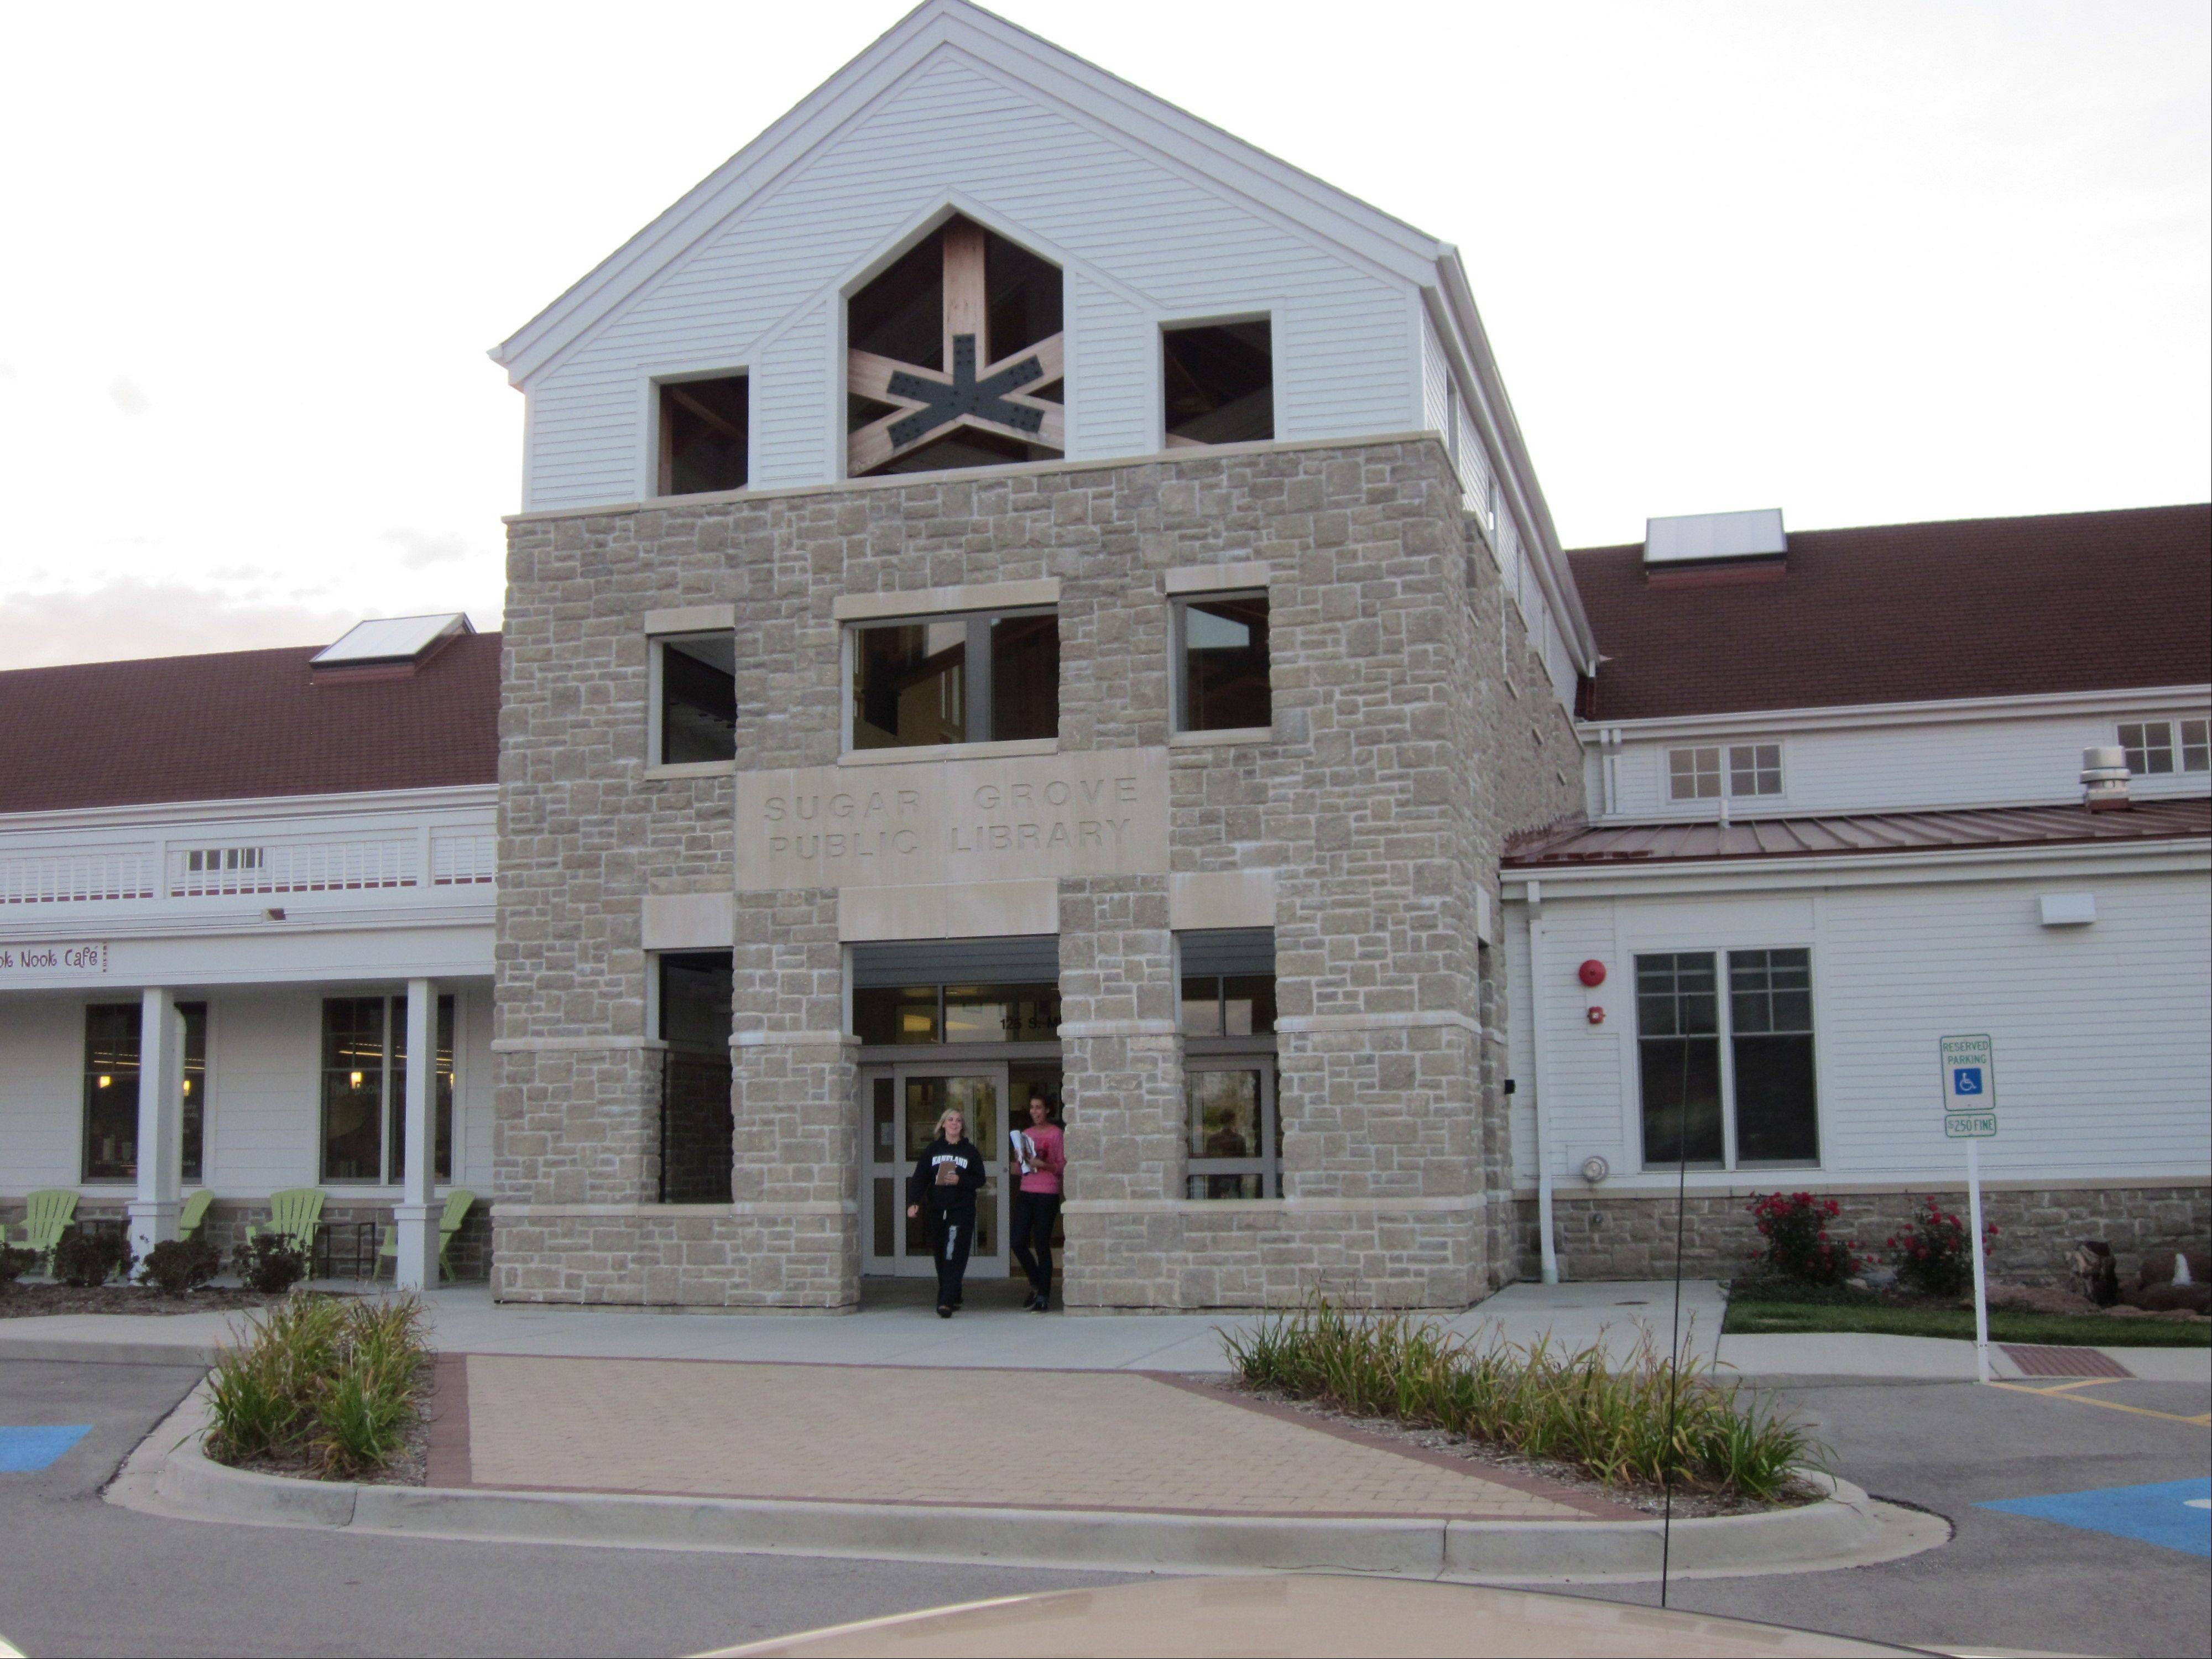 Sugar Grove library to expand hours next year